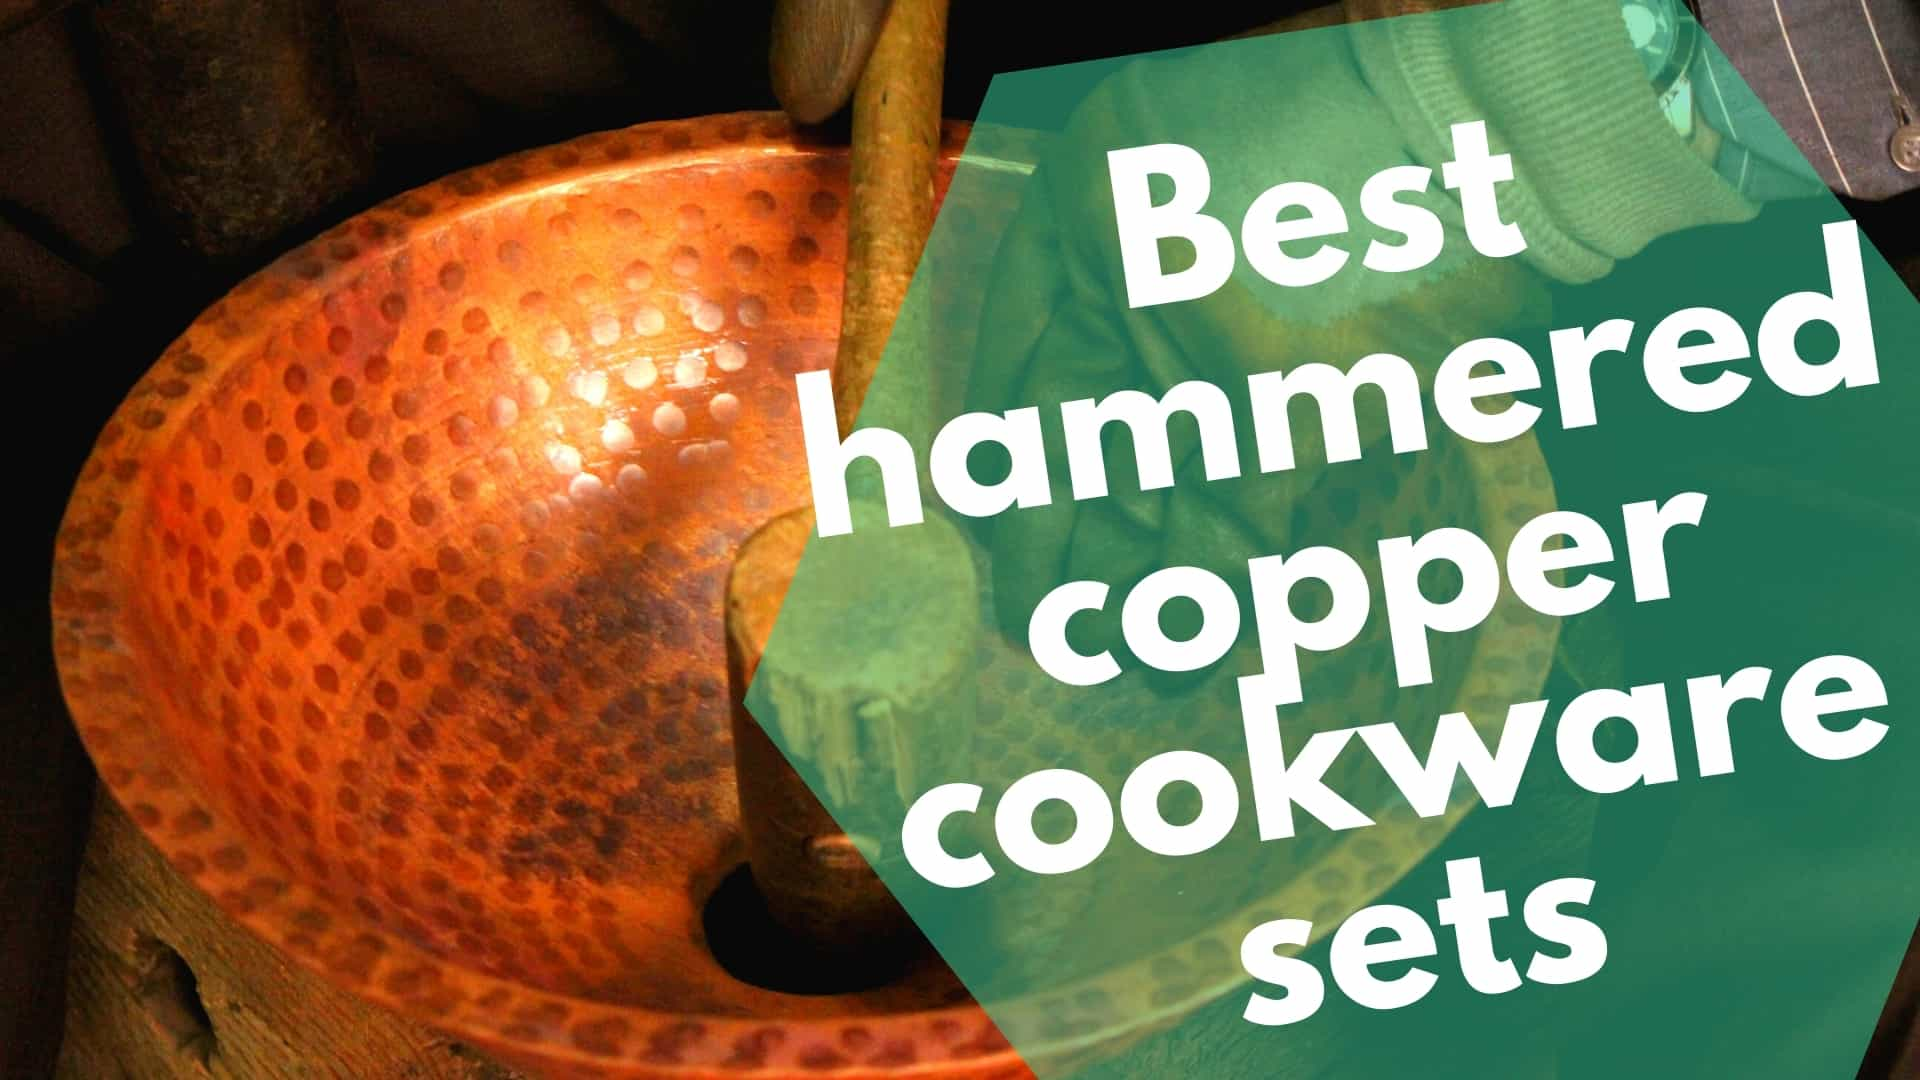 Best hammered copper cookware sets